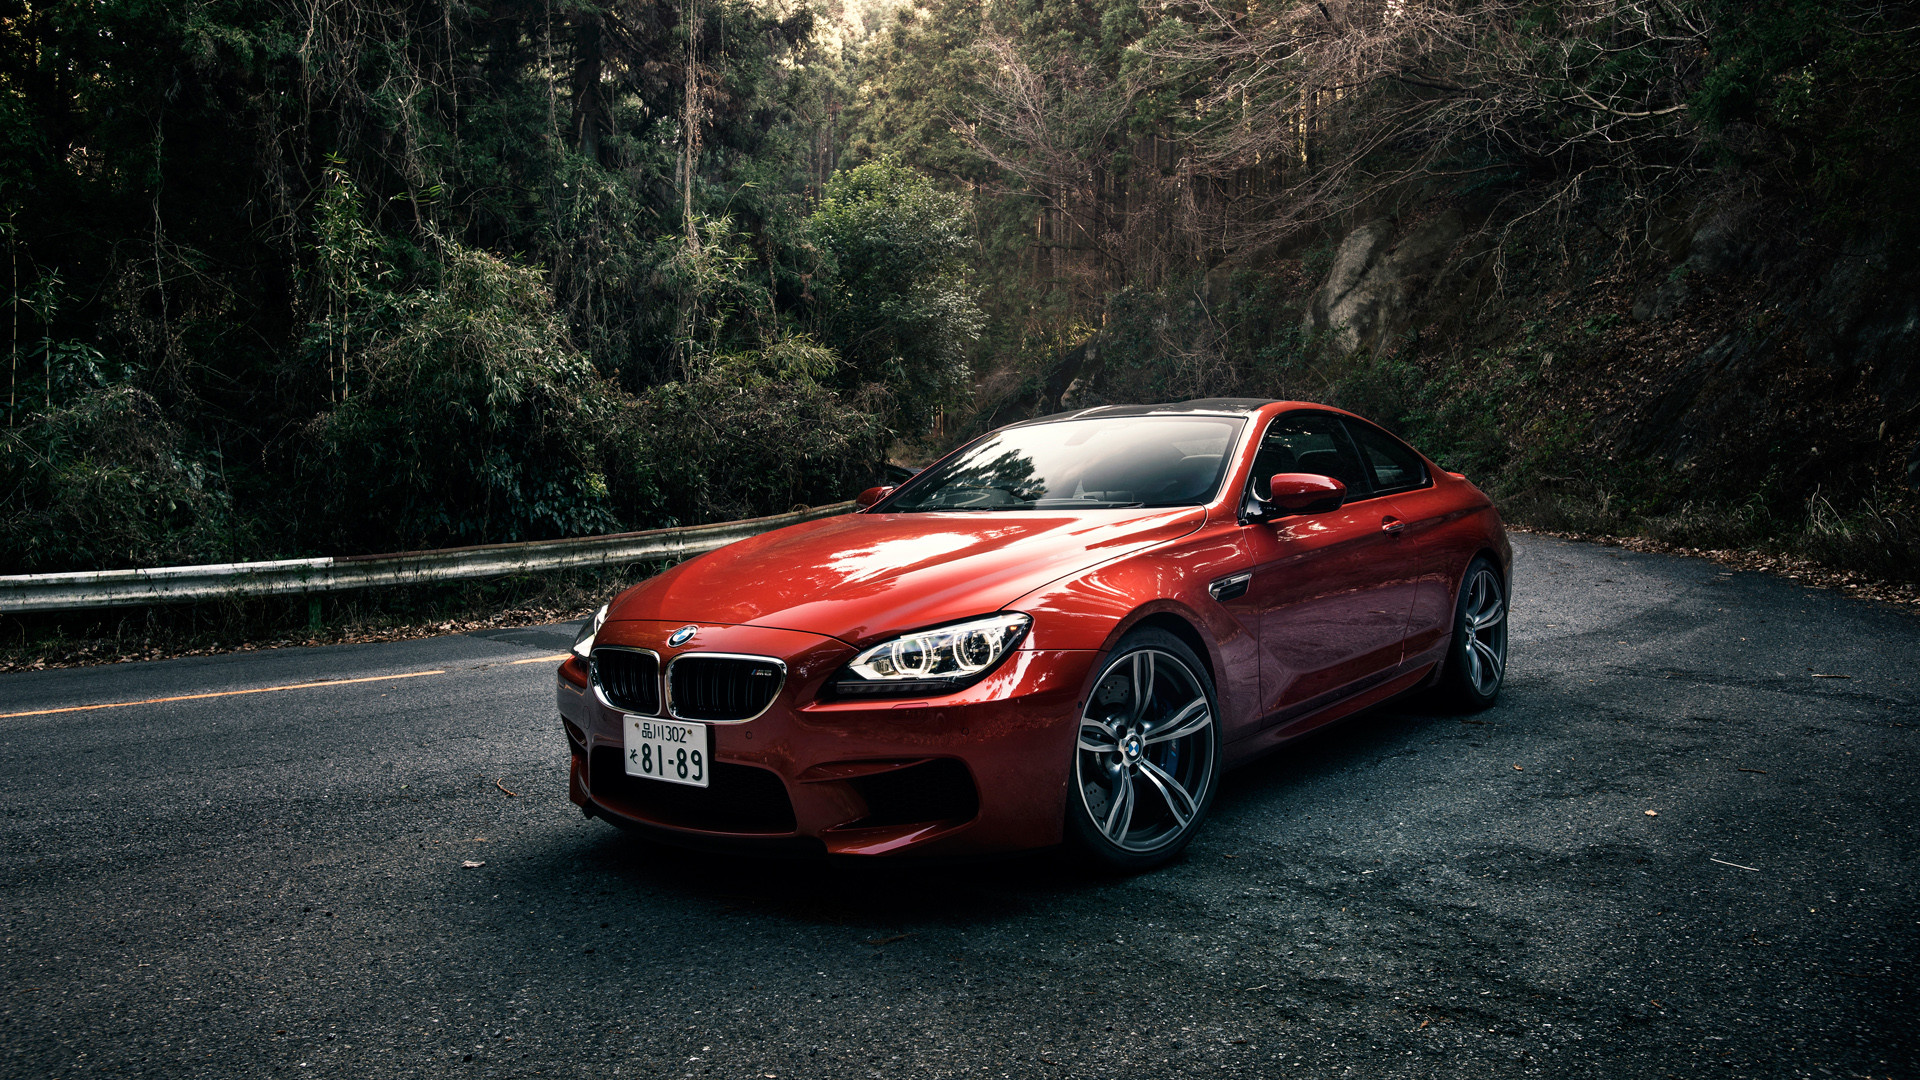 1920x1080 BMW M6 2 Wallpaper | HD Car Wallpapers